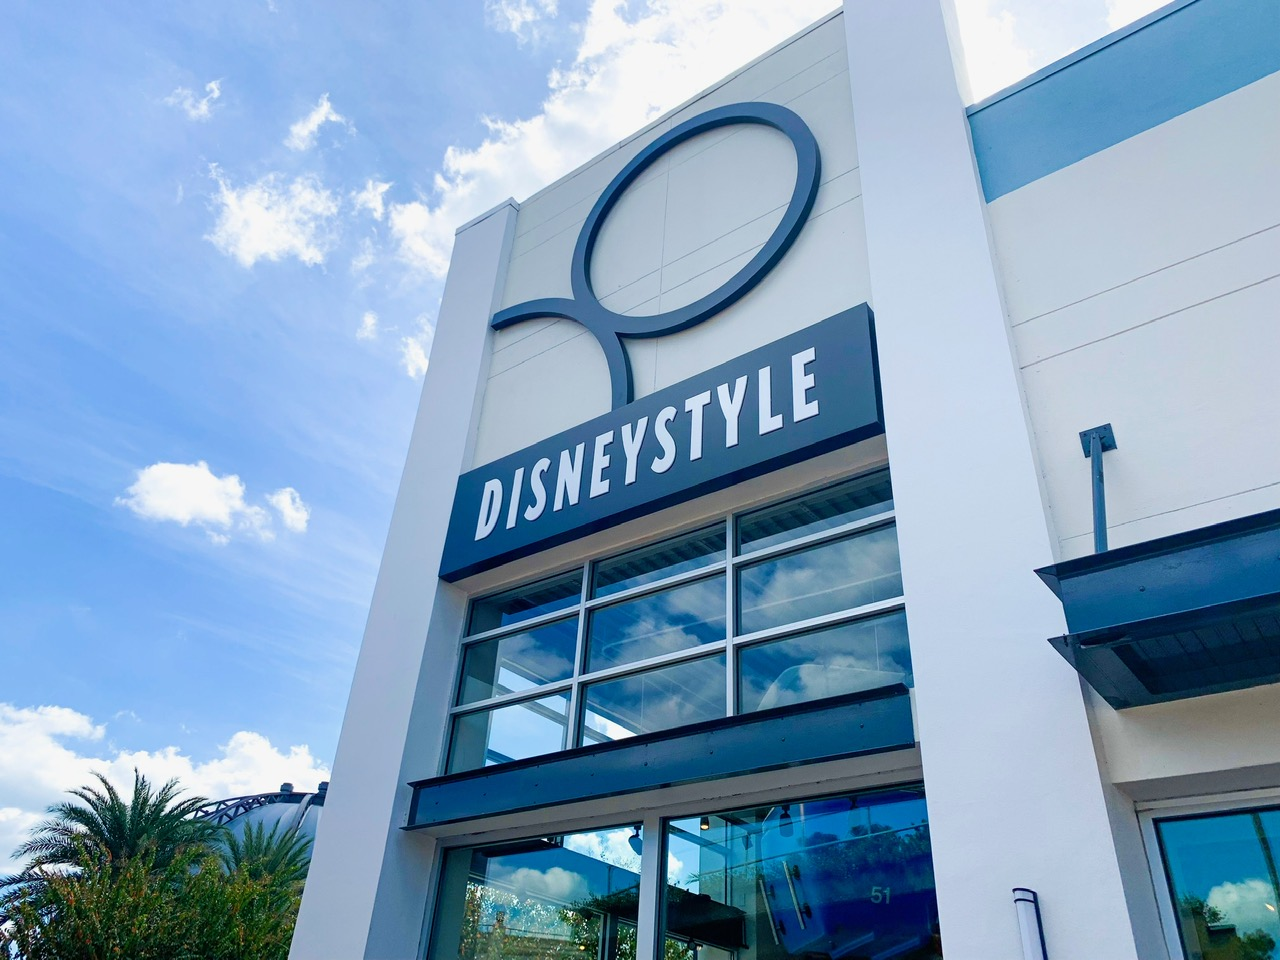 Storefront of DisneyStyle at Disney Springs. The storefront is an off white color with large windows and a dark blue sign with white, all capital DisneyStyle letters. There is a blue sky and clouds in the background.